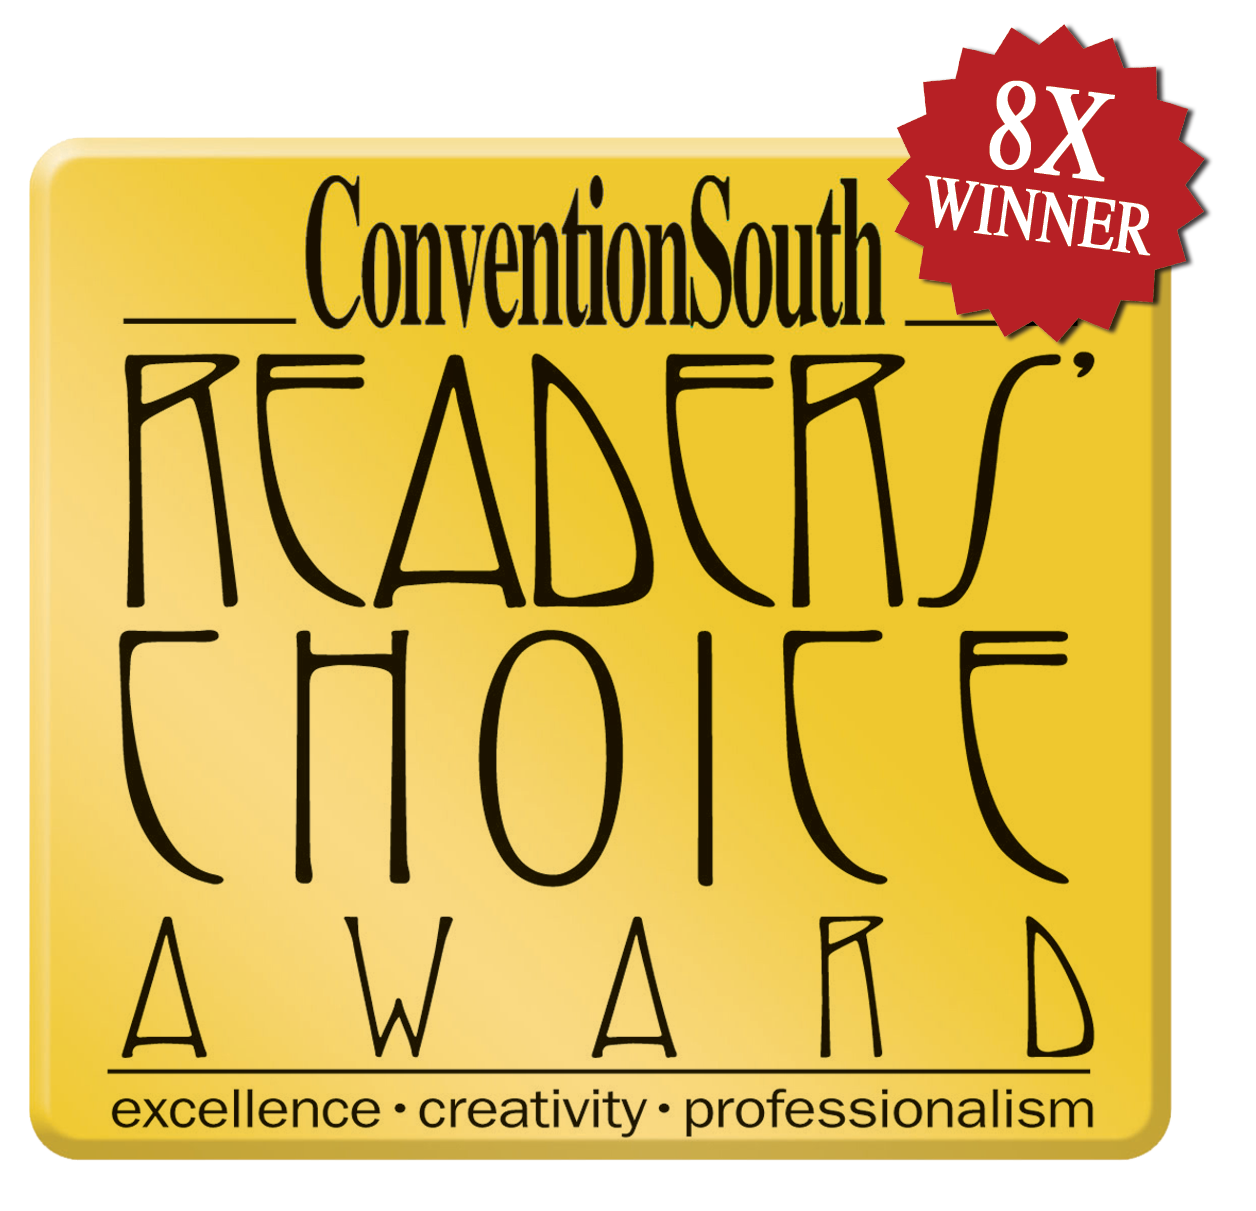 Convention South Reader Choice Award